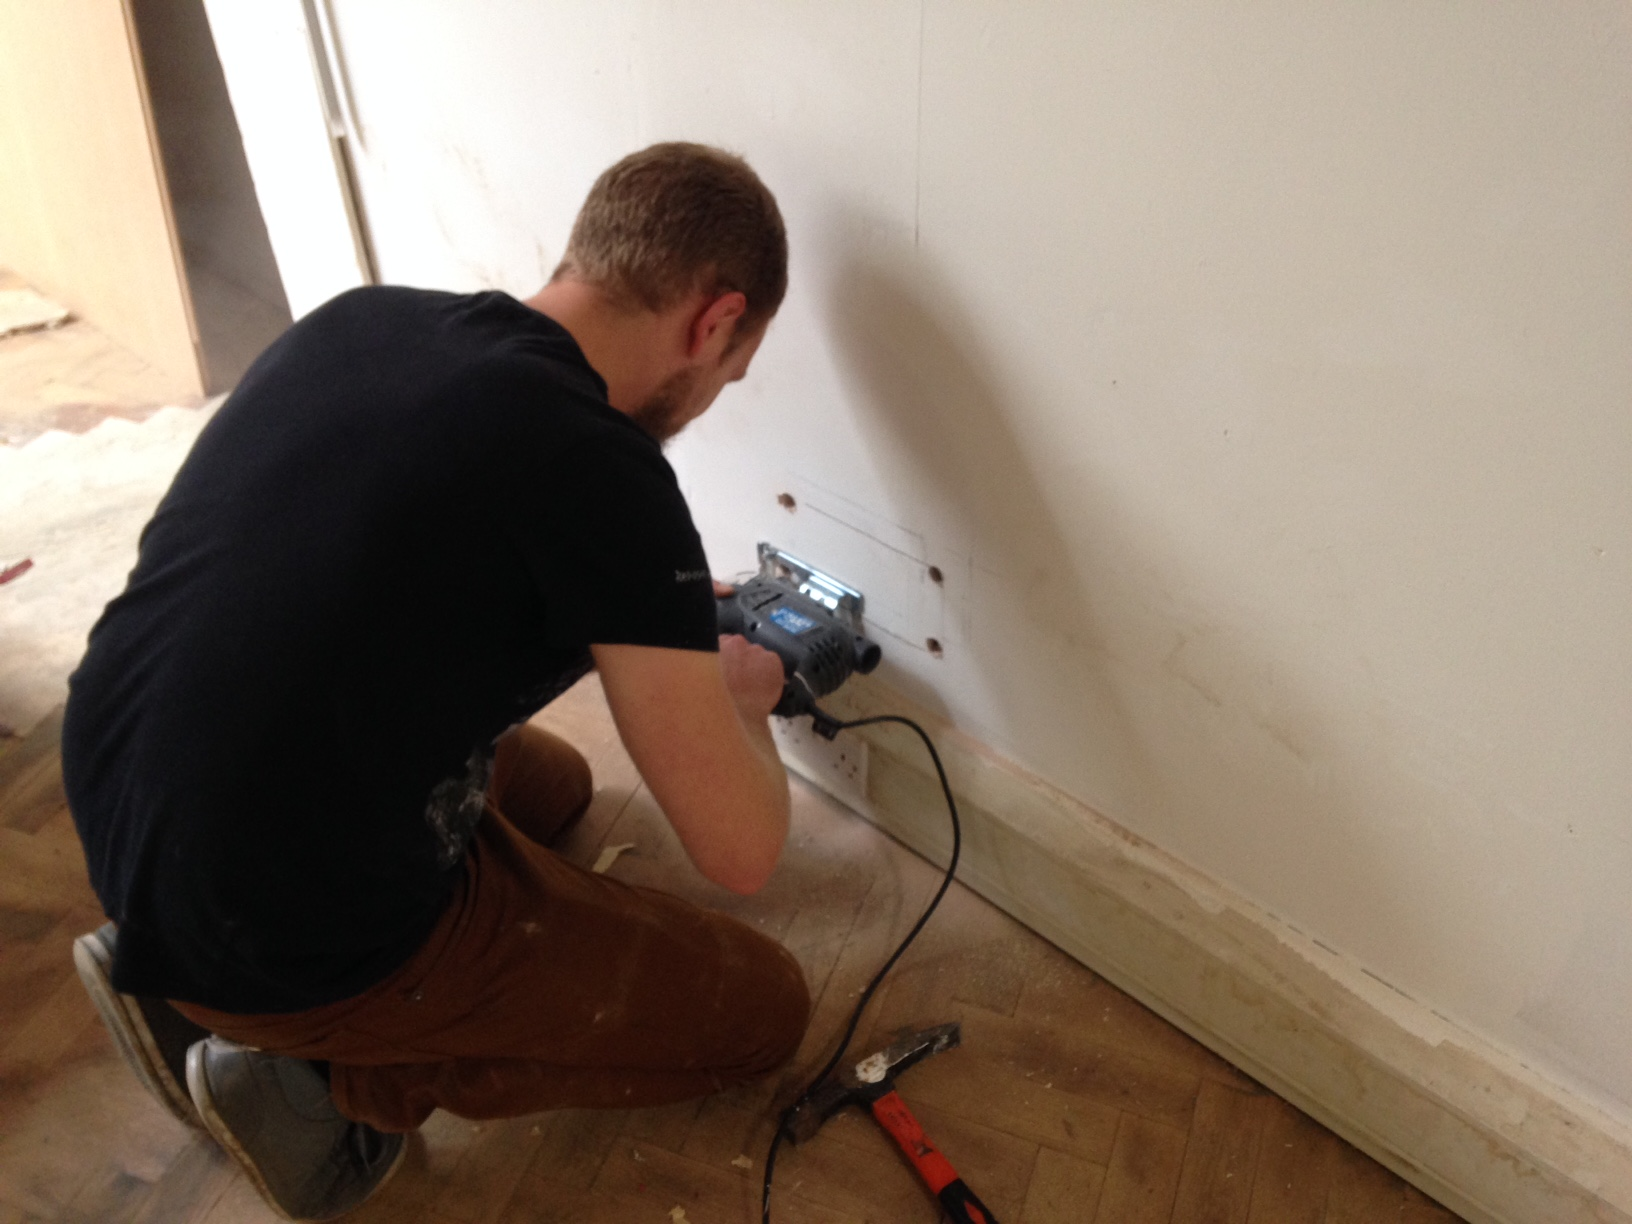 Cutting open the wall with a jigsaw to retrieve drill